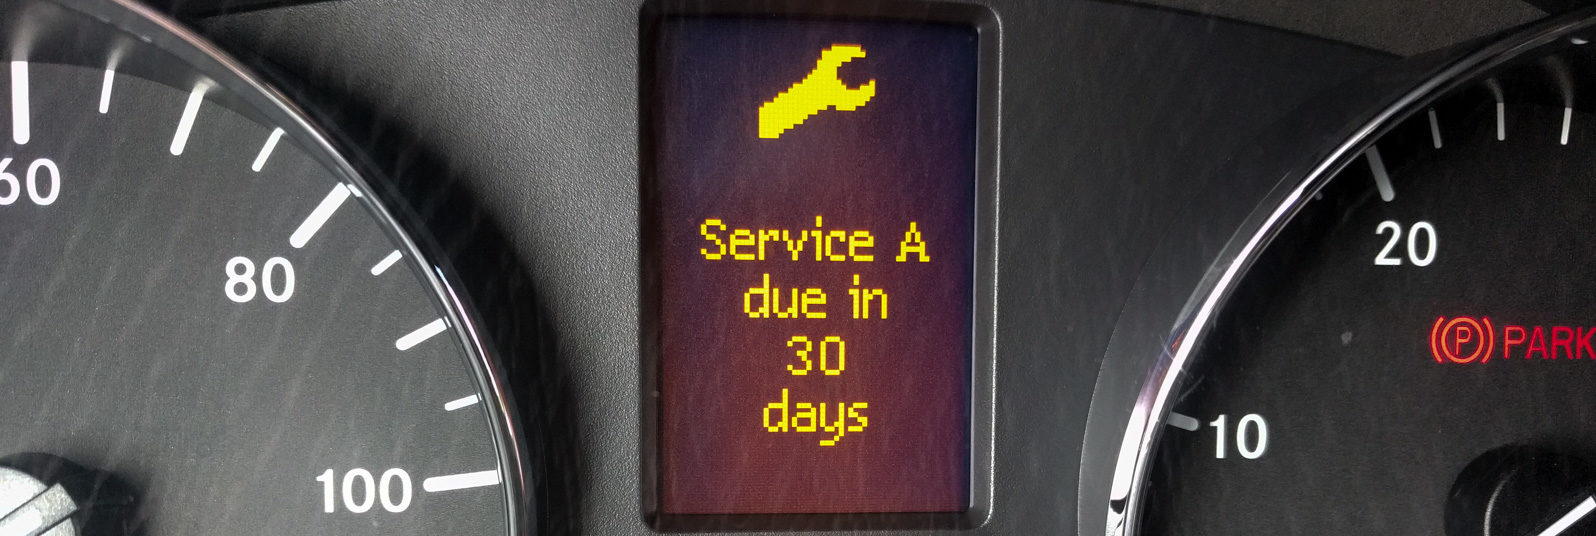 Service A dash message